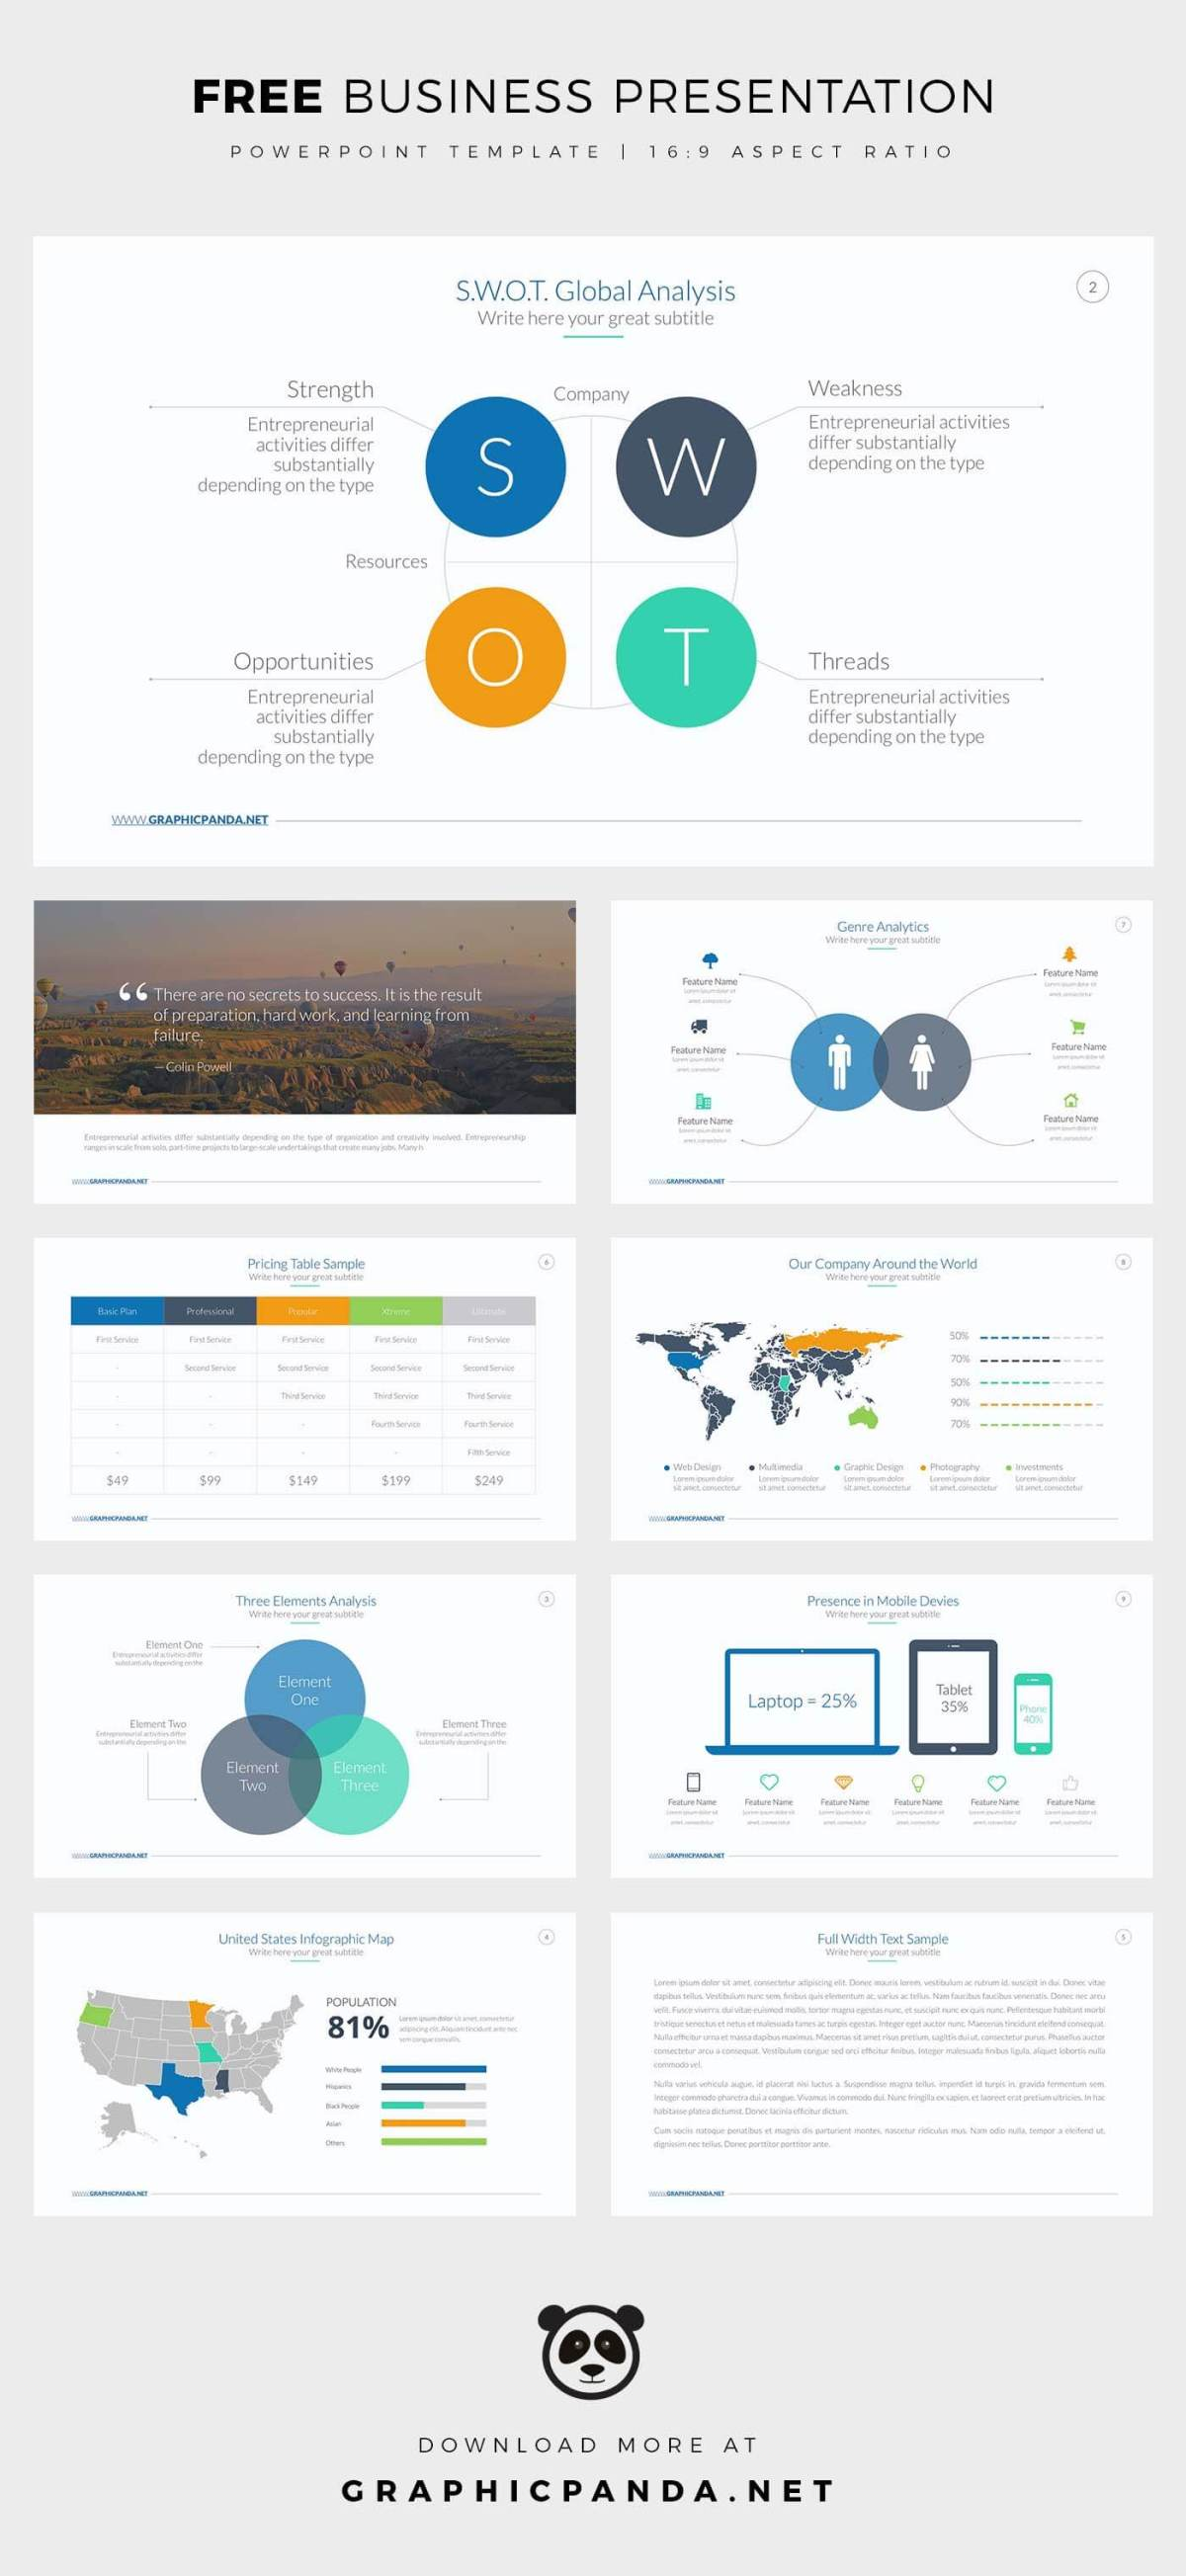 Free business powerpoint templates professional and easy to edit free business powerpoint template accmission Images